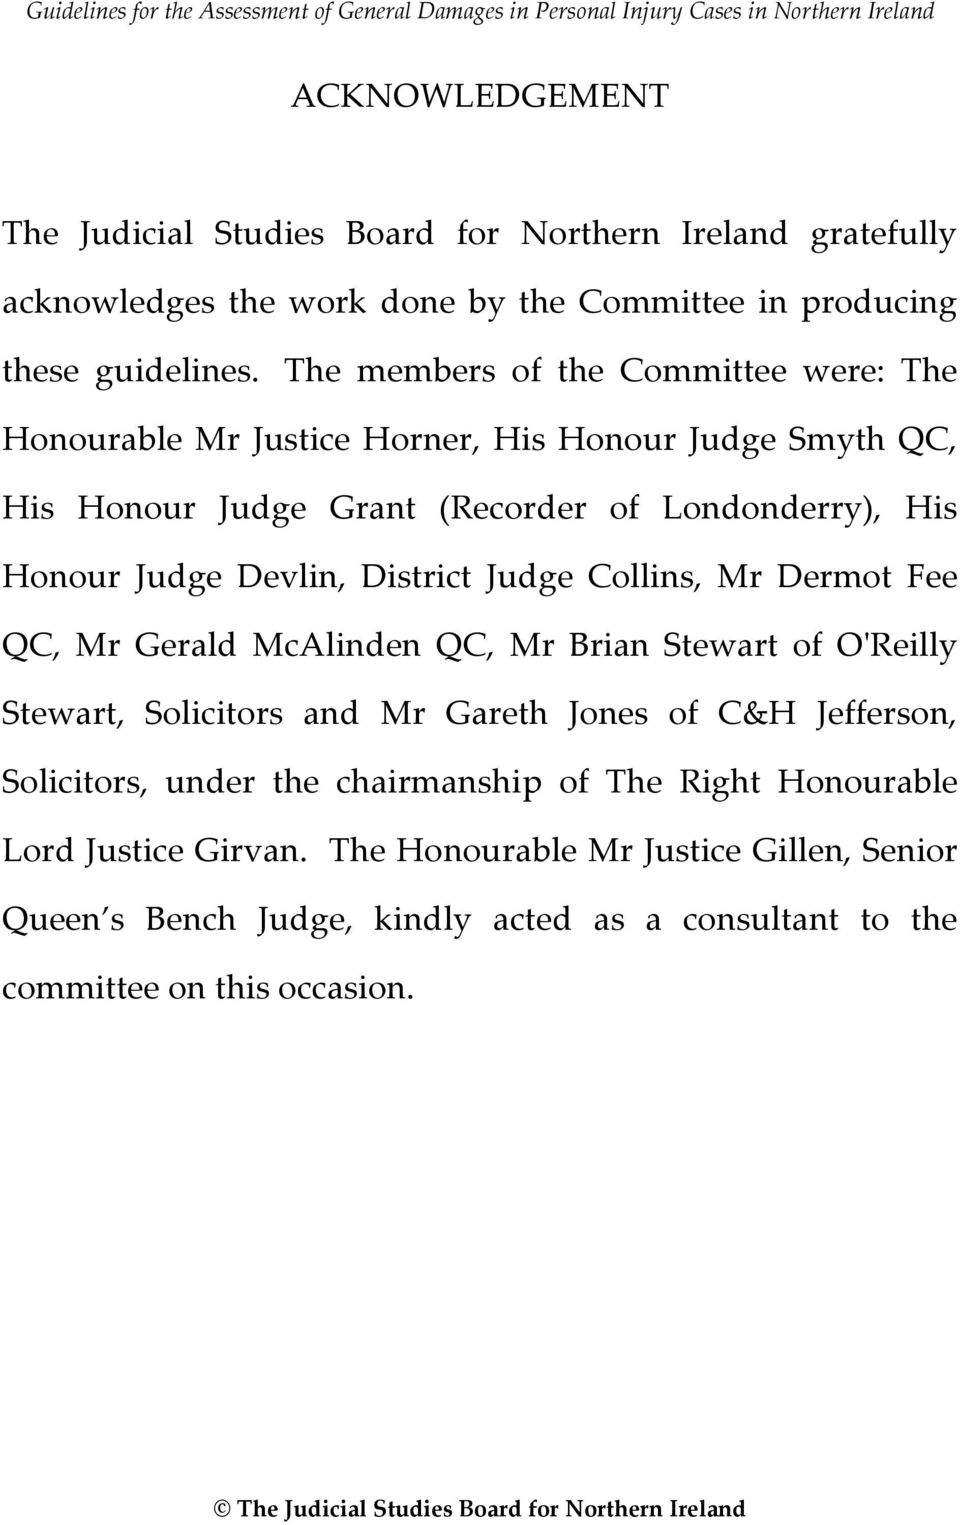 Judge Collins, Mr Dermot Fee QC, Mr Gerald McAlinden QC, Mr Brian Stewart of O'Reilly Stewart, Solicitors and Mr Gareth Jones of C&H Jefferson, Solicitors, under the chairmanship of